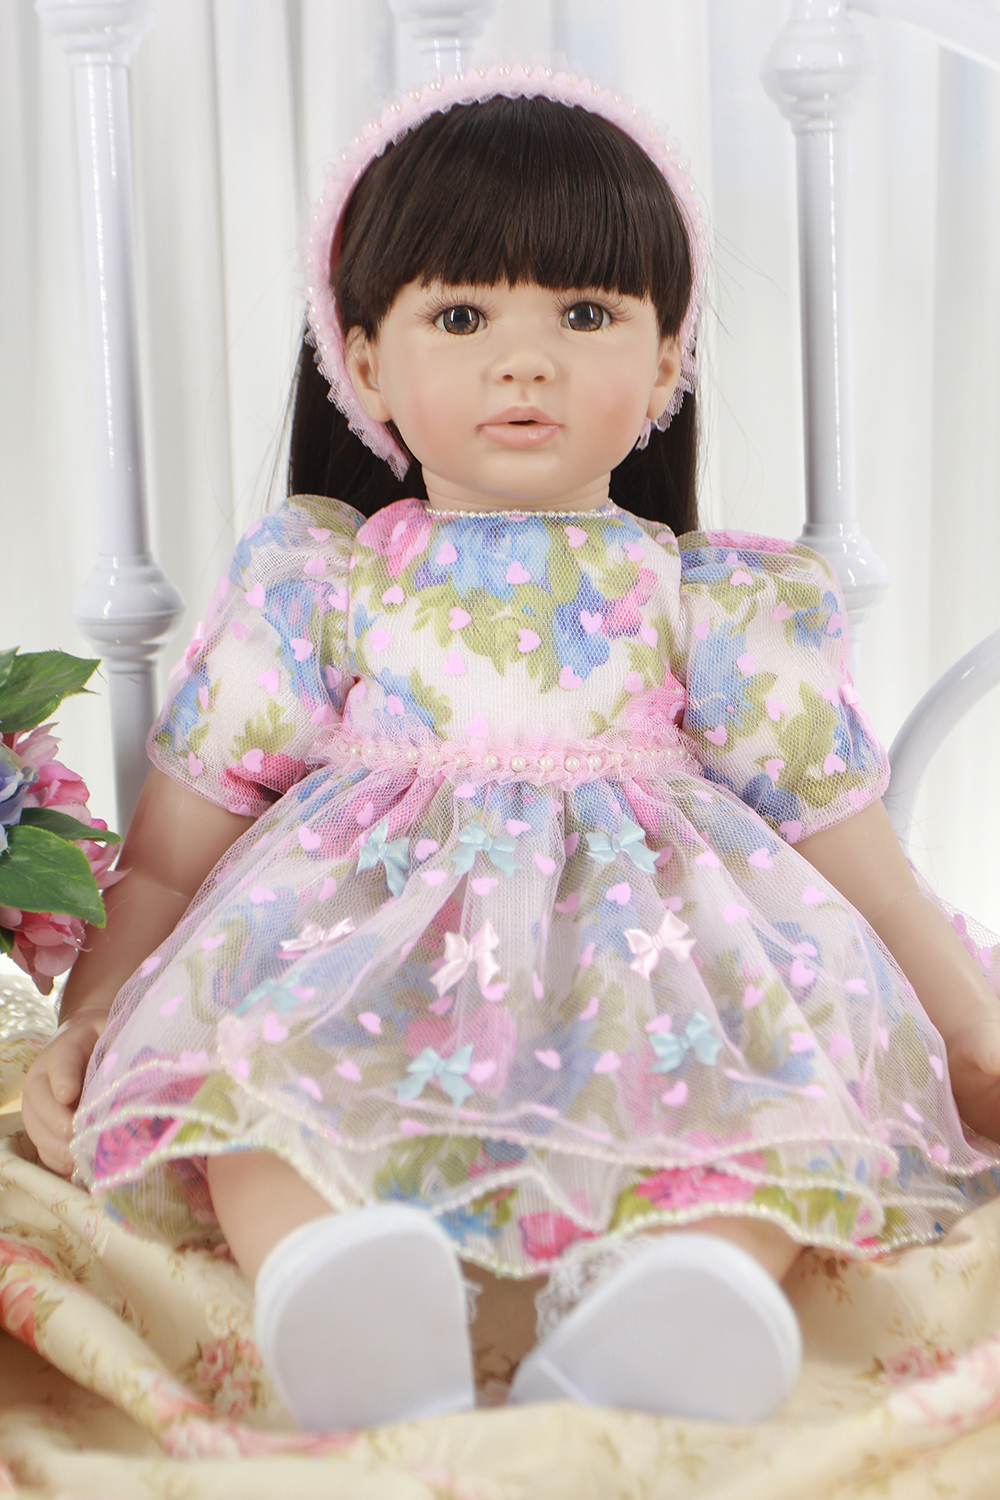 Pursue 24/60 cm New Colorful Butterfly Real Life Baby Doll Reborn Vinyl Silicone Toddler Princess Dolls for Girls Birthday Gift new fashion design reborn toddler doll rooted hair soft silicone vinyl real gentle touch 28inches fashion gift for birthday